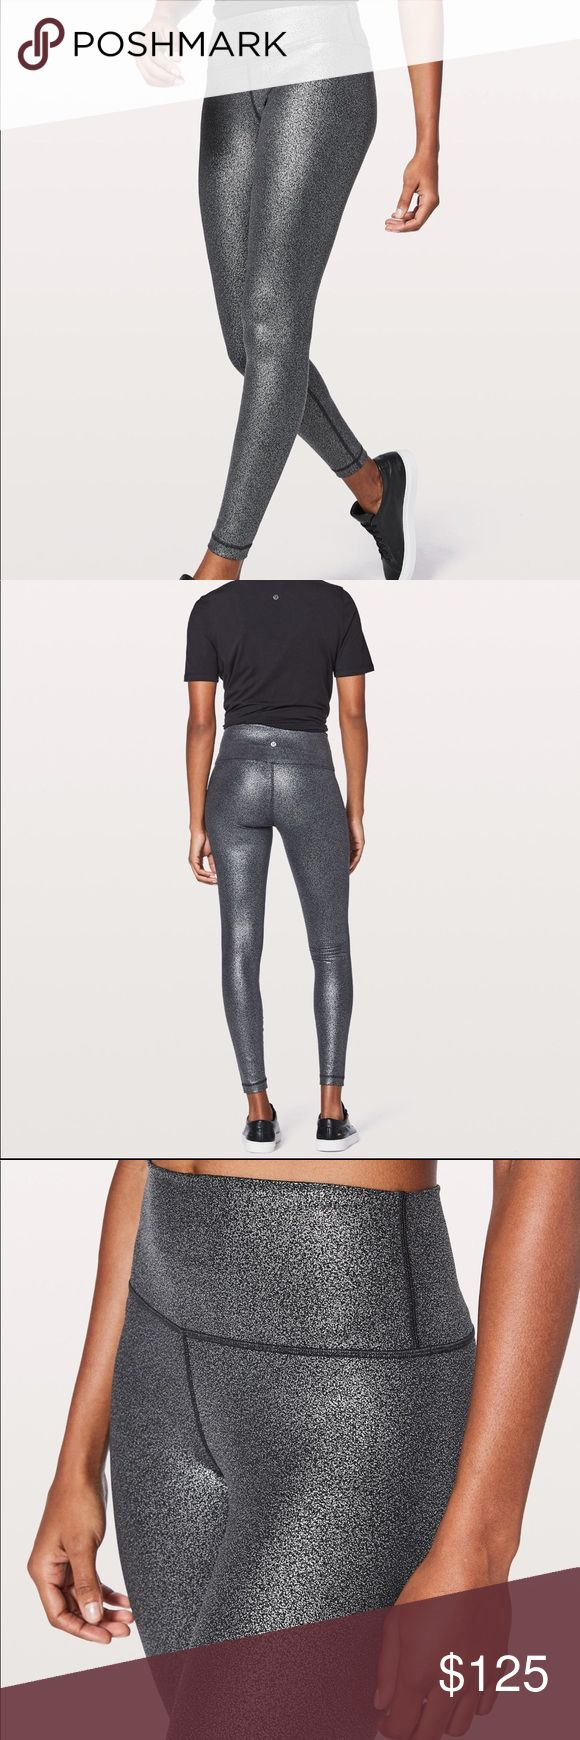 Lululemon FOIL Wunder Under Leggings size 4 New with tags! Sold out online! Foil leggings in perfect condition, size 4! Only selling because I accidentally bought 2 pairs! Feel free to make an offer! lululemon athletica Pants Leggings